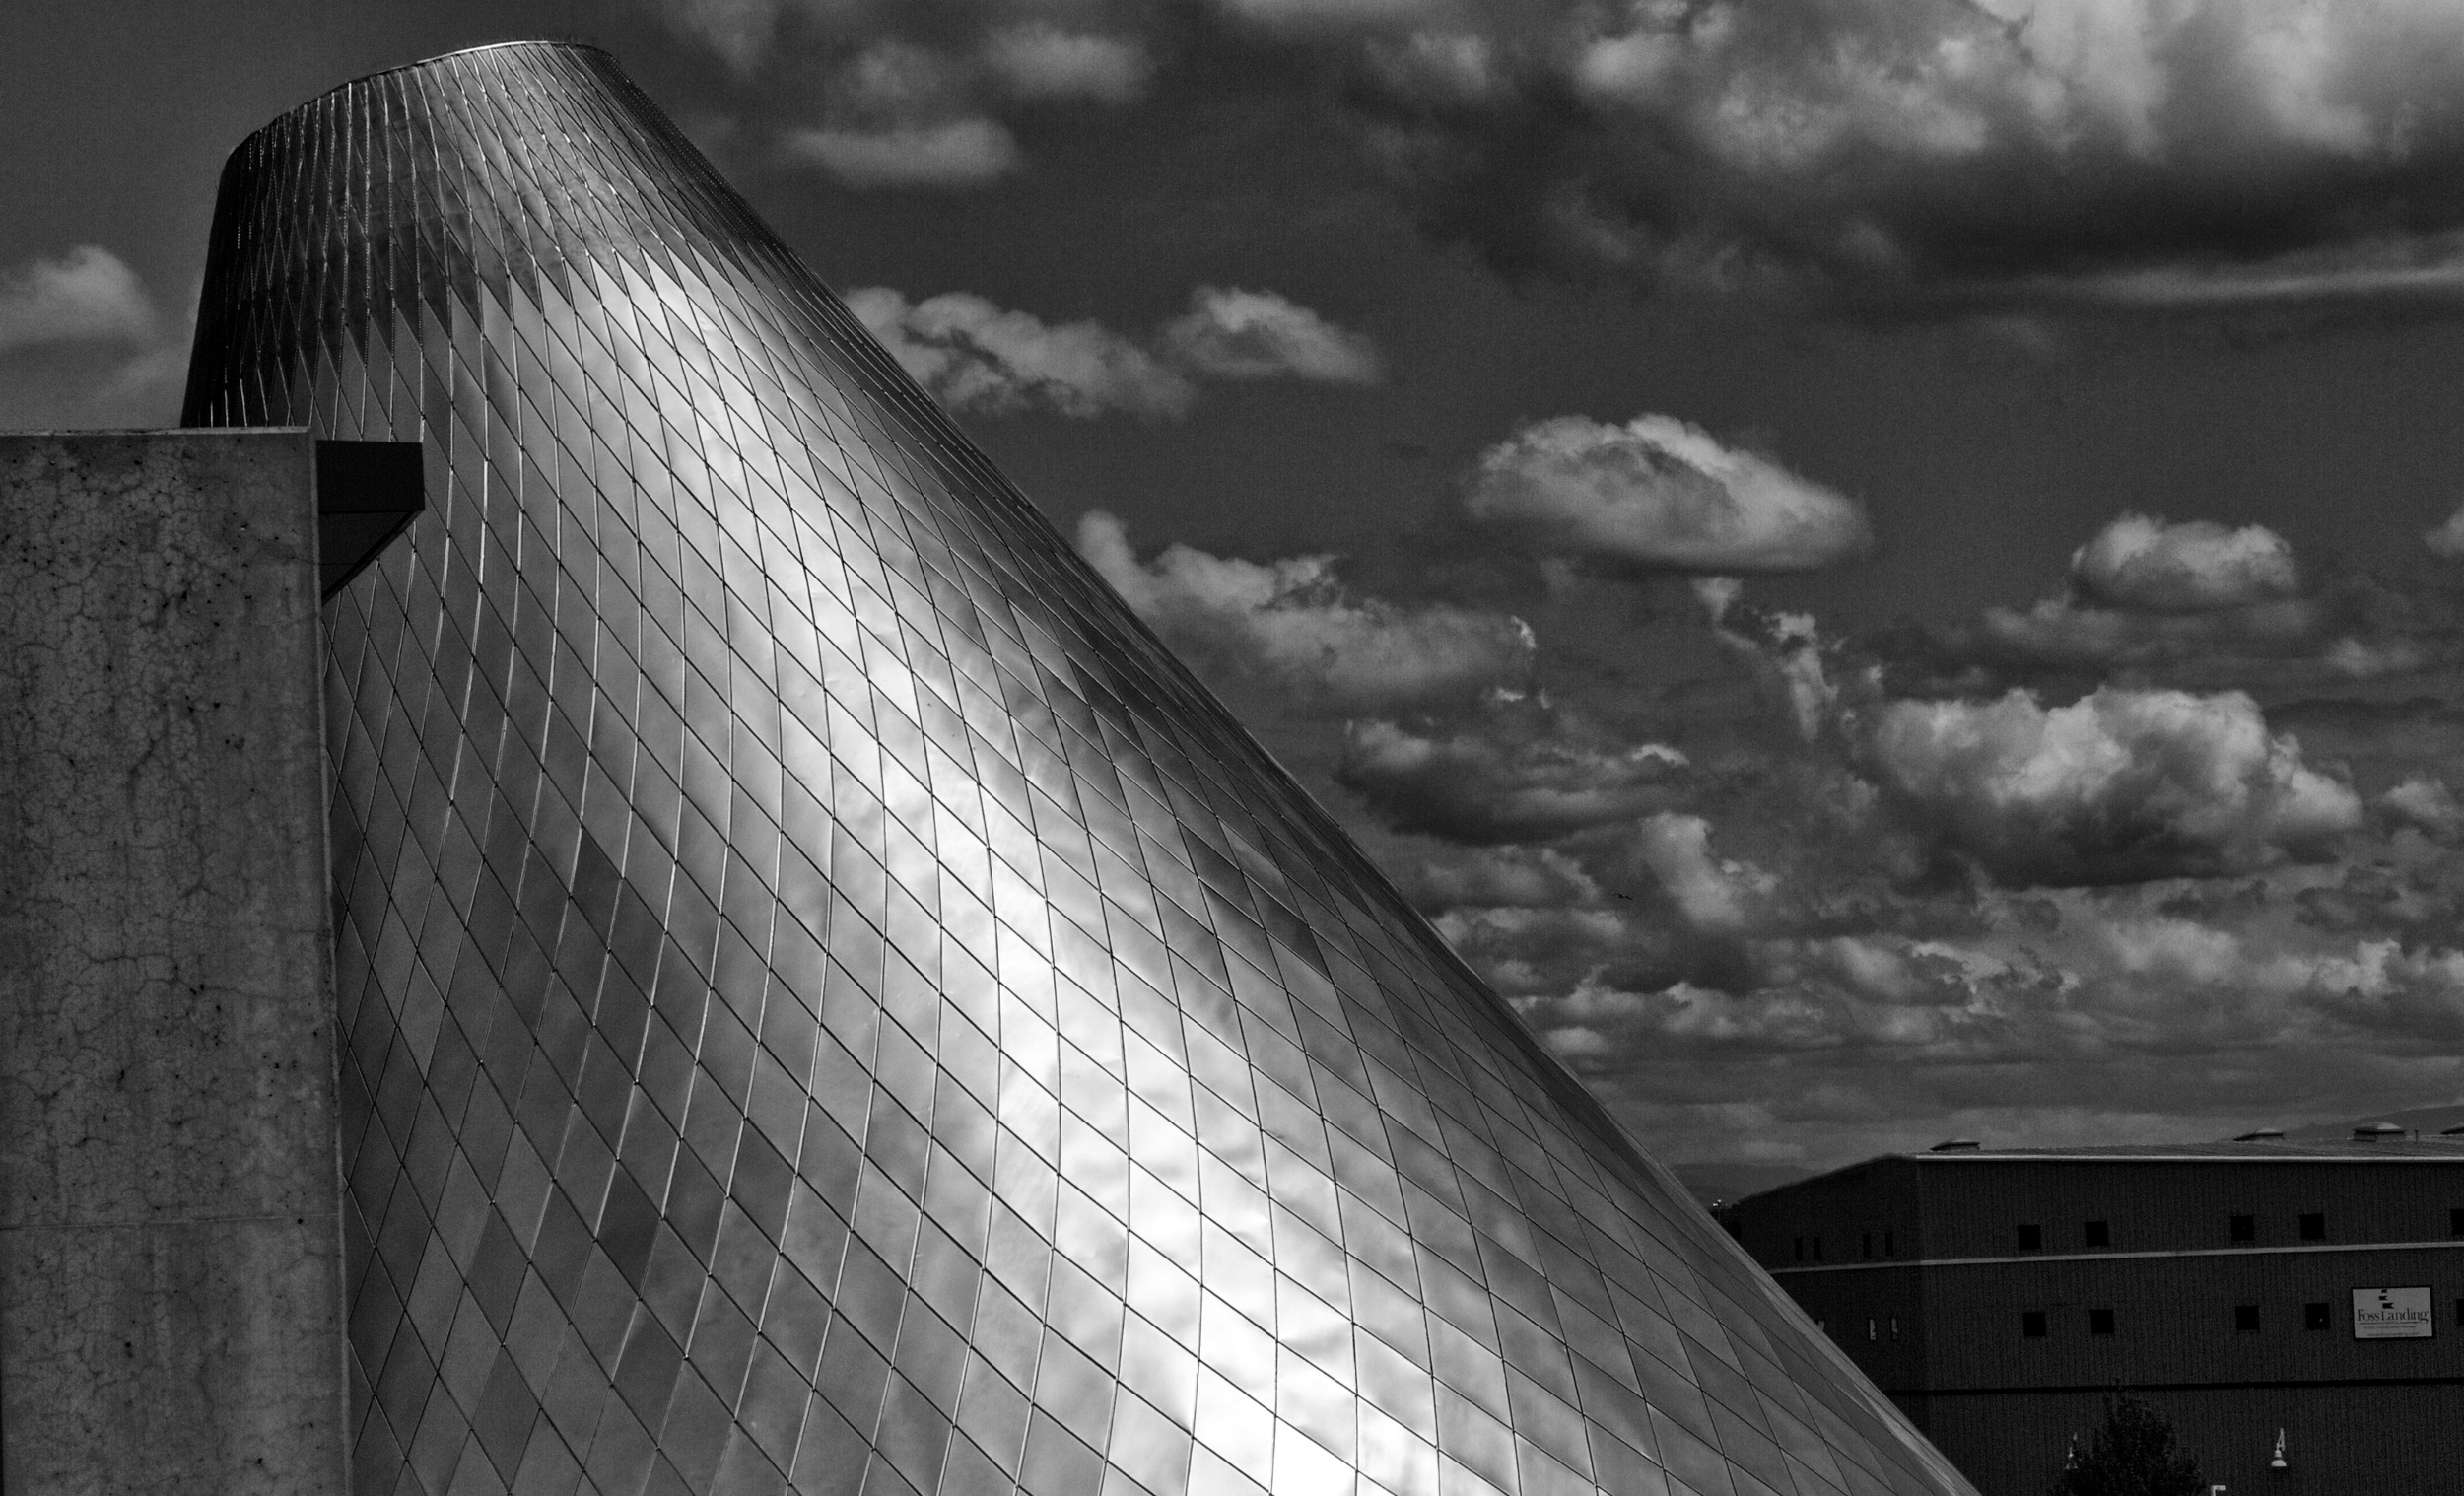 The Glass Museum in Tacoma rises as a stainless steel cone against the clouds in the sky.  Canon EOS 7D EF-S 17-55mm f/2.8 at 55mm f/10 1/4000 ISO 100 -1ev